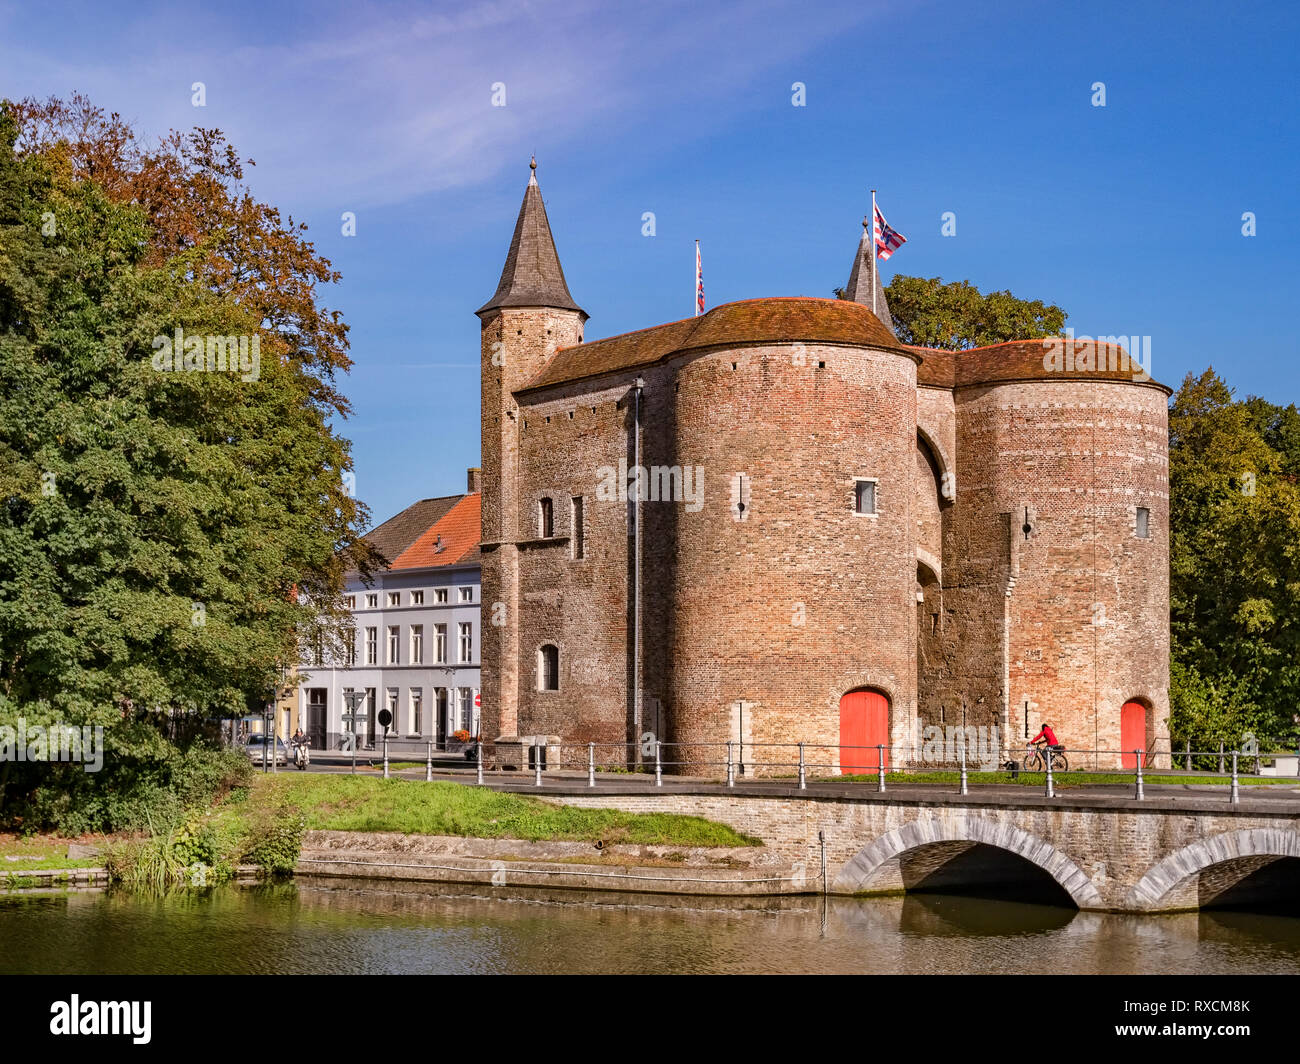 25 September 2018: Bruges, Belgium - The Gentpoort or Ghent Gate, a 15th Century part of the city's defences. Stock Photo